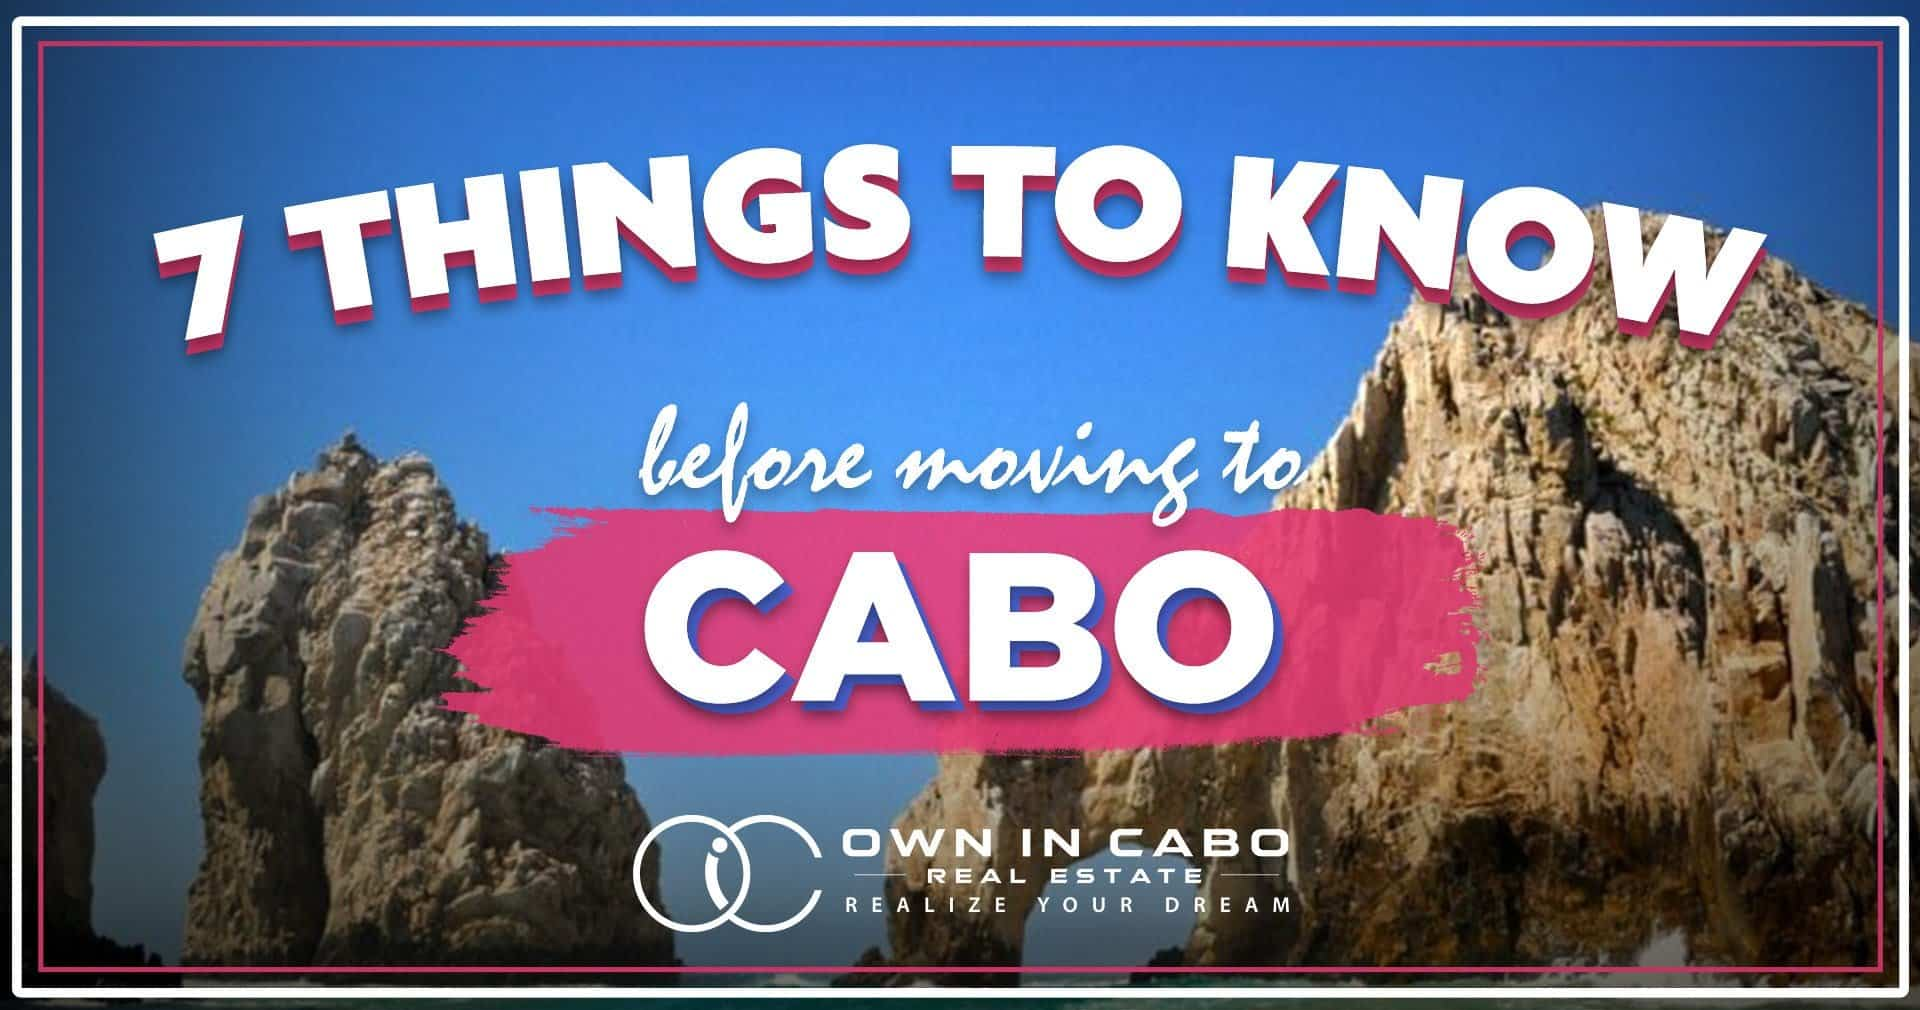 Cabo Pacific Side Real Estate cabo pacific Own In Cabo Real Estate